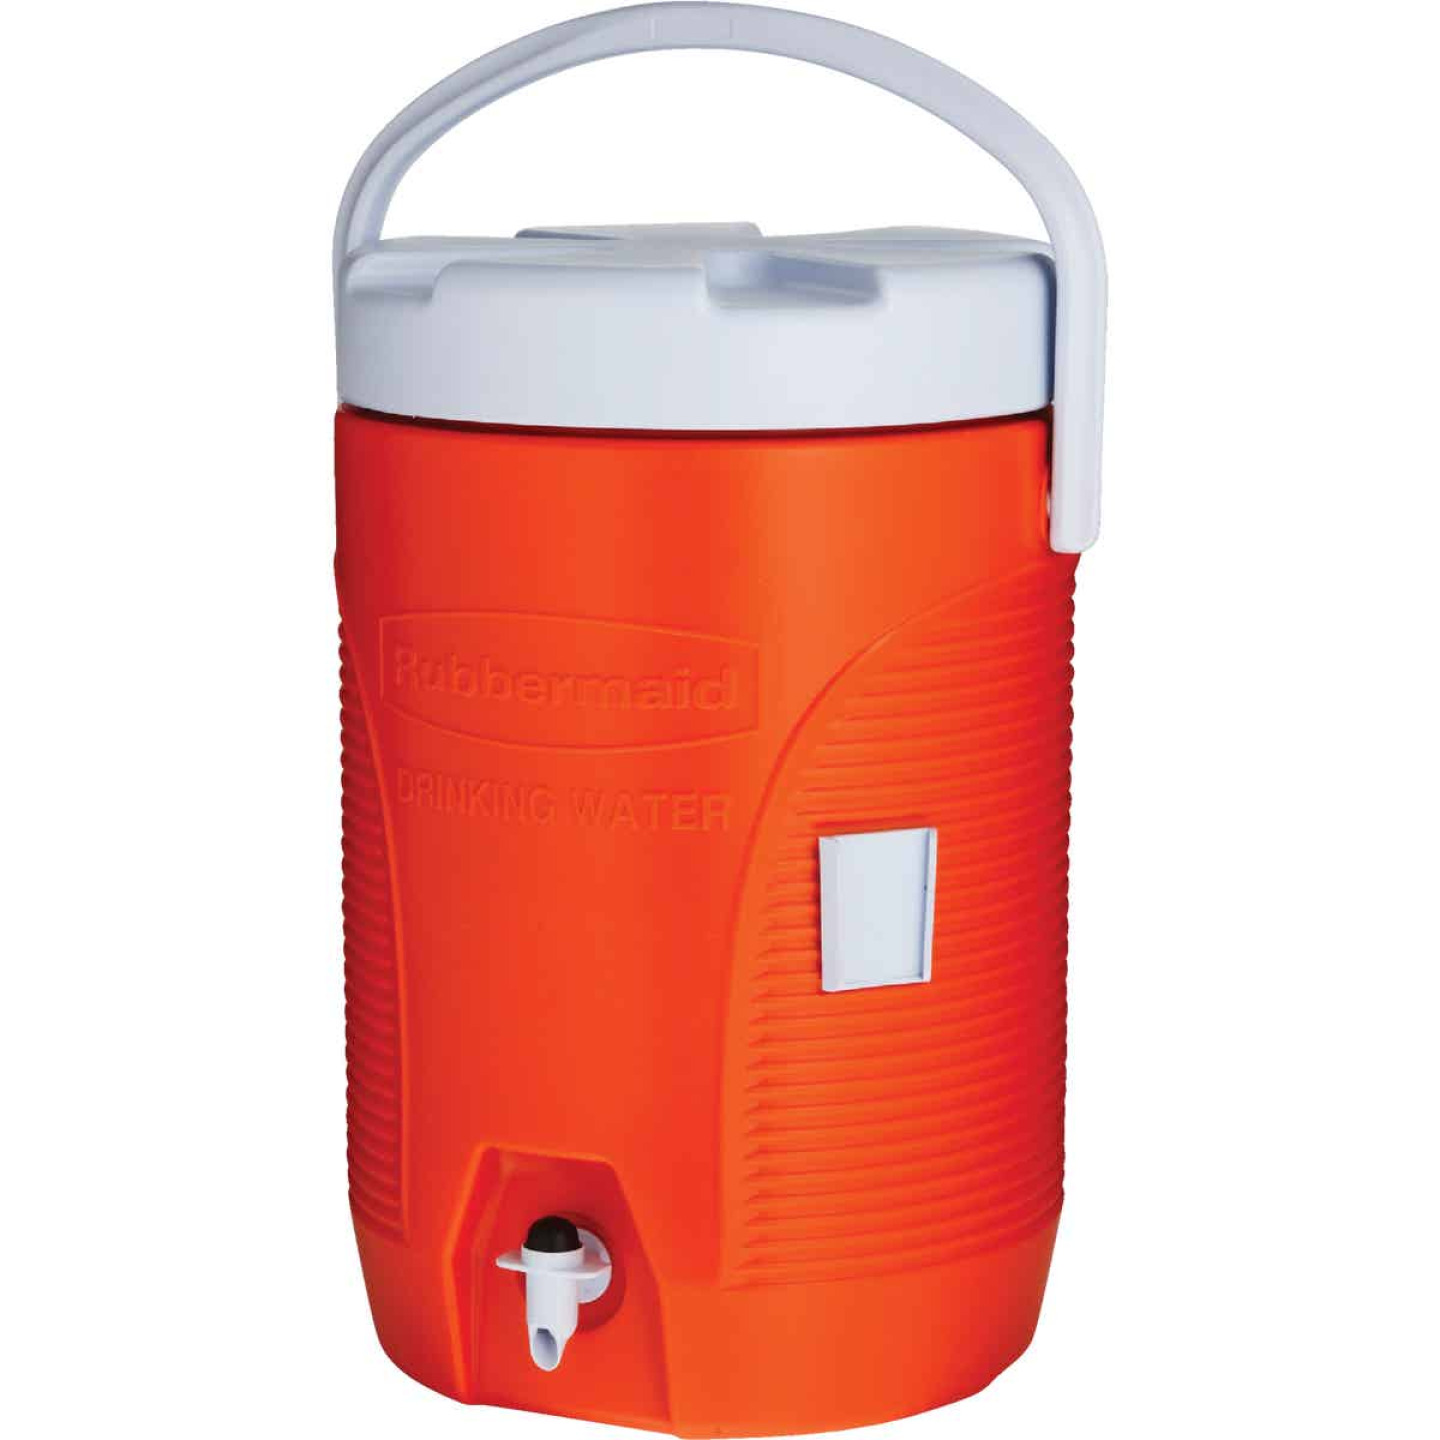 Rubbermaid 3 Gal. Orange Water Jug with Swing-Top Handle Image 4